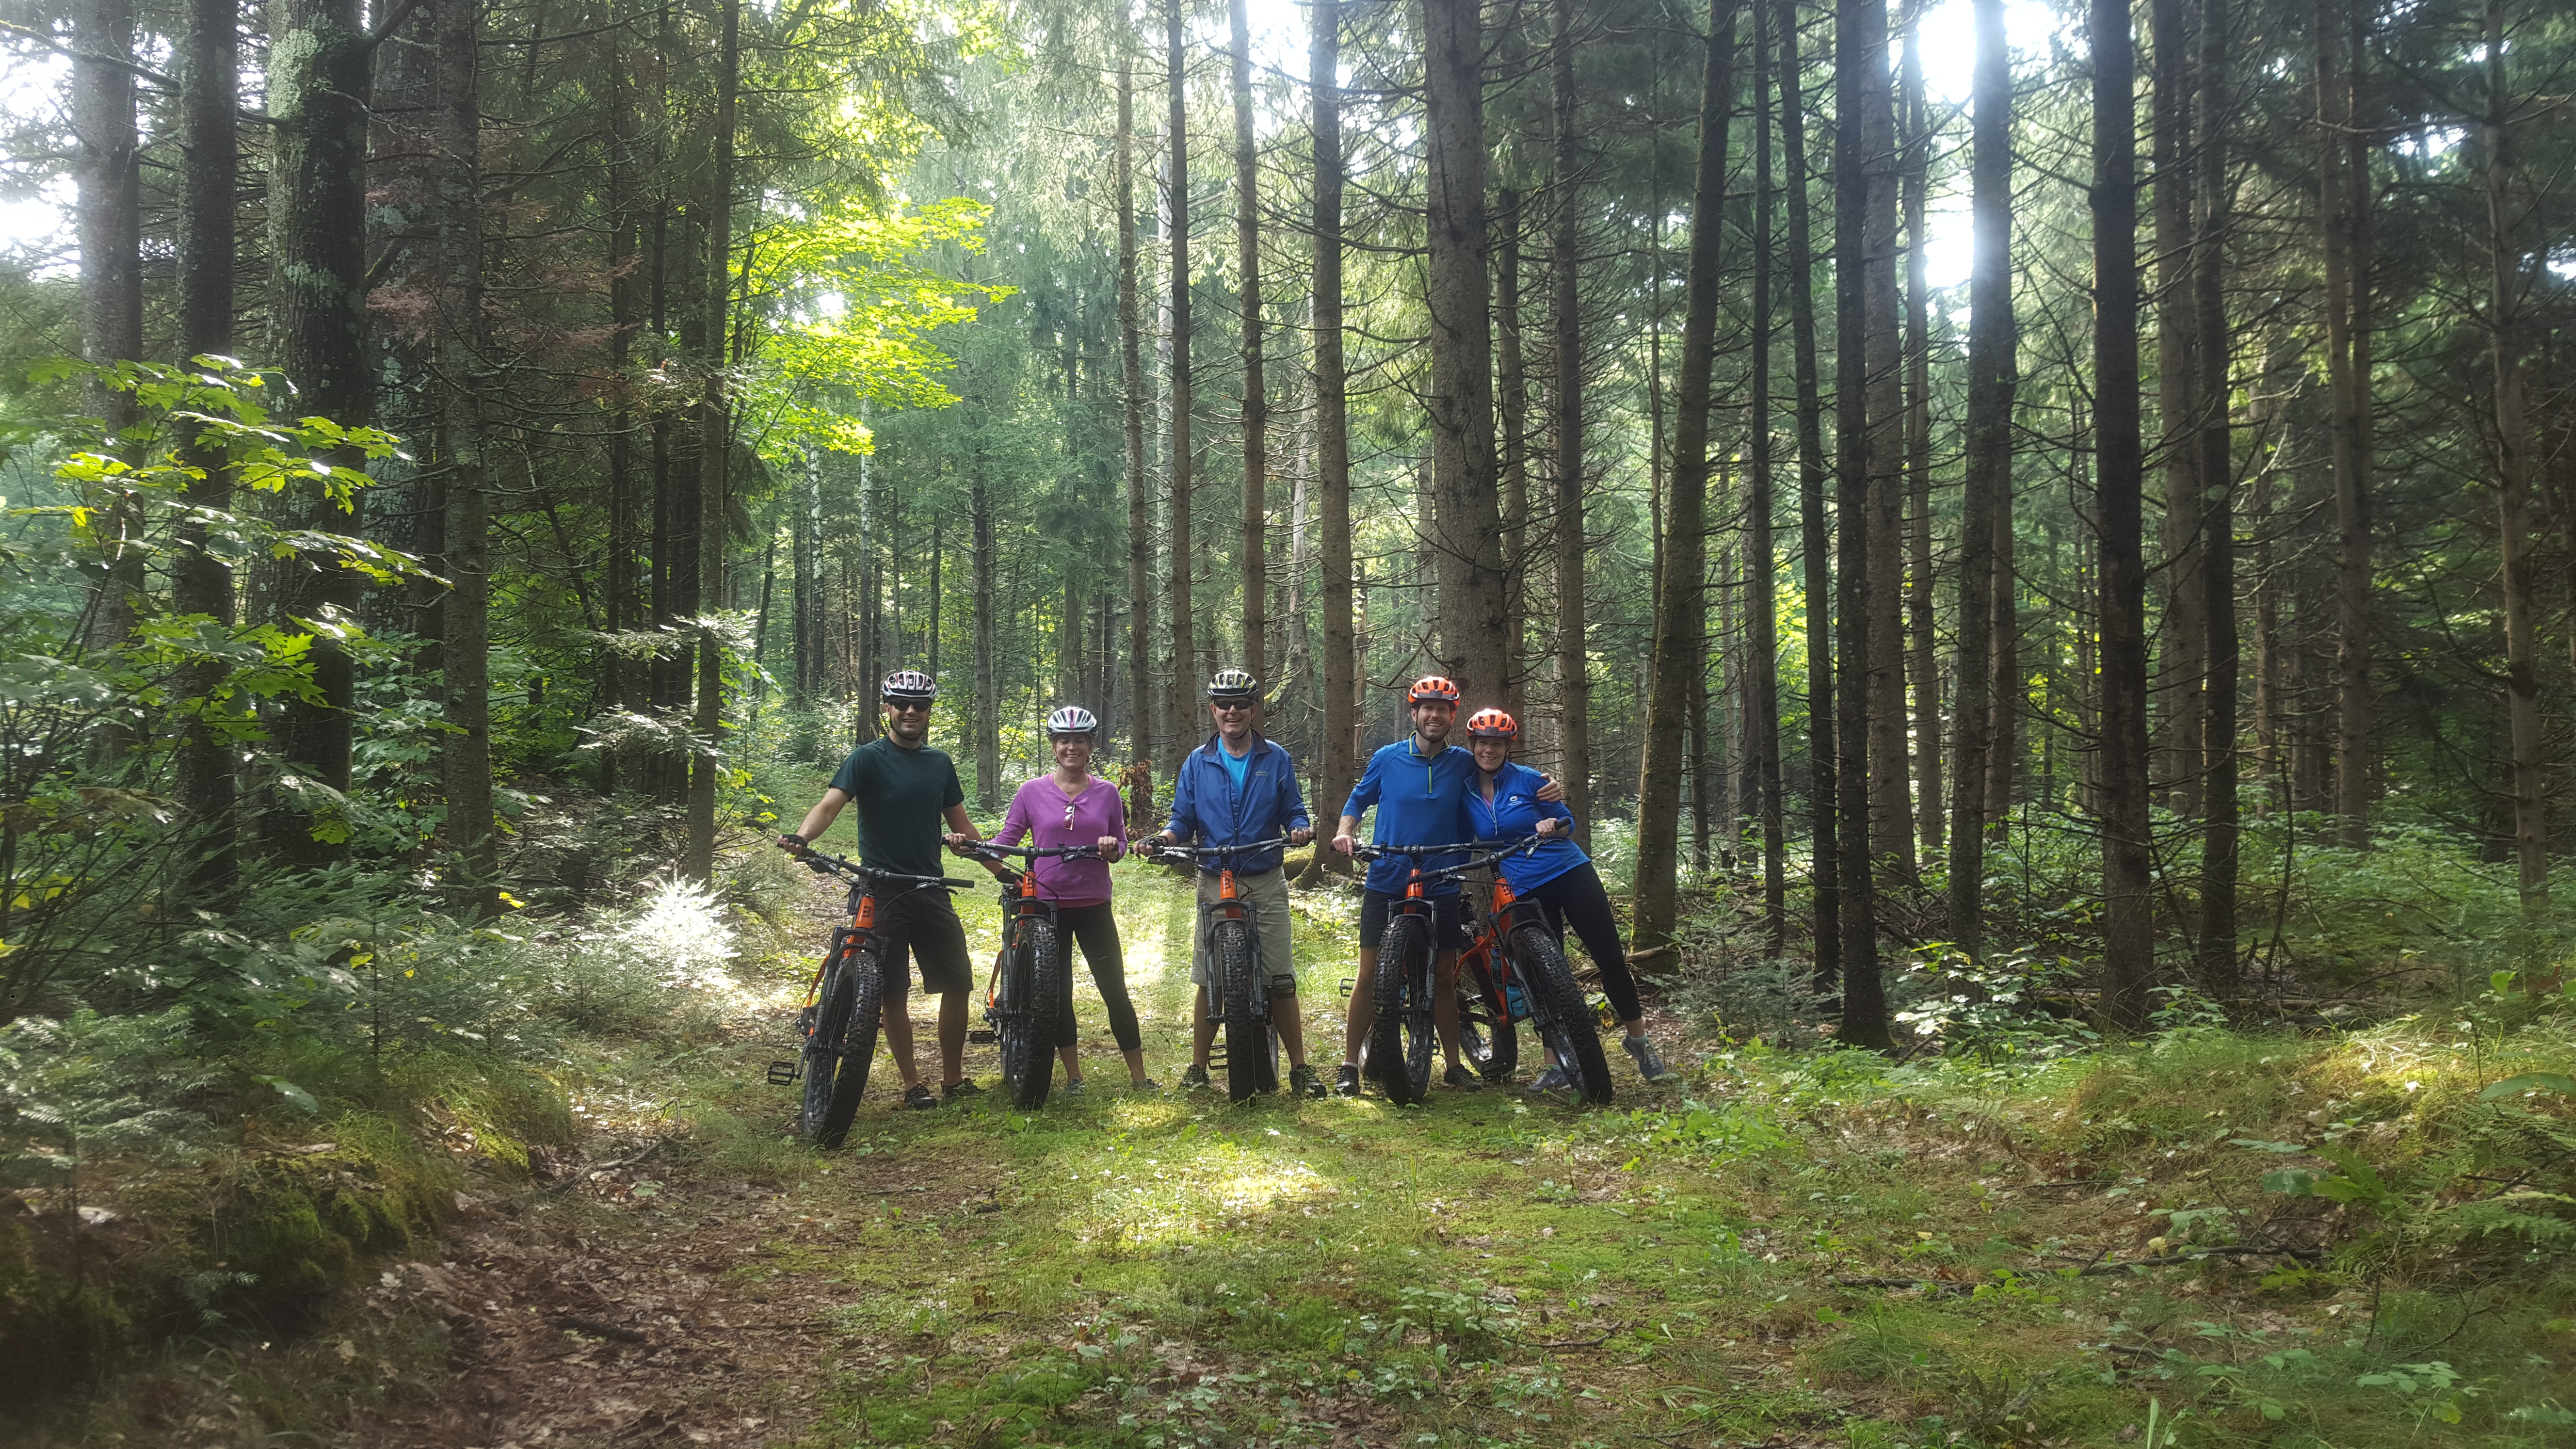 Family FATbike Guided Tour